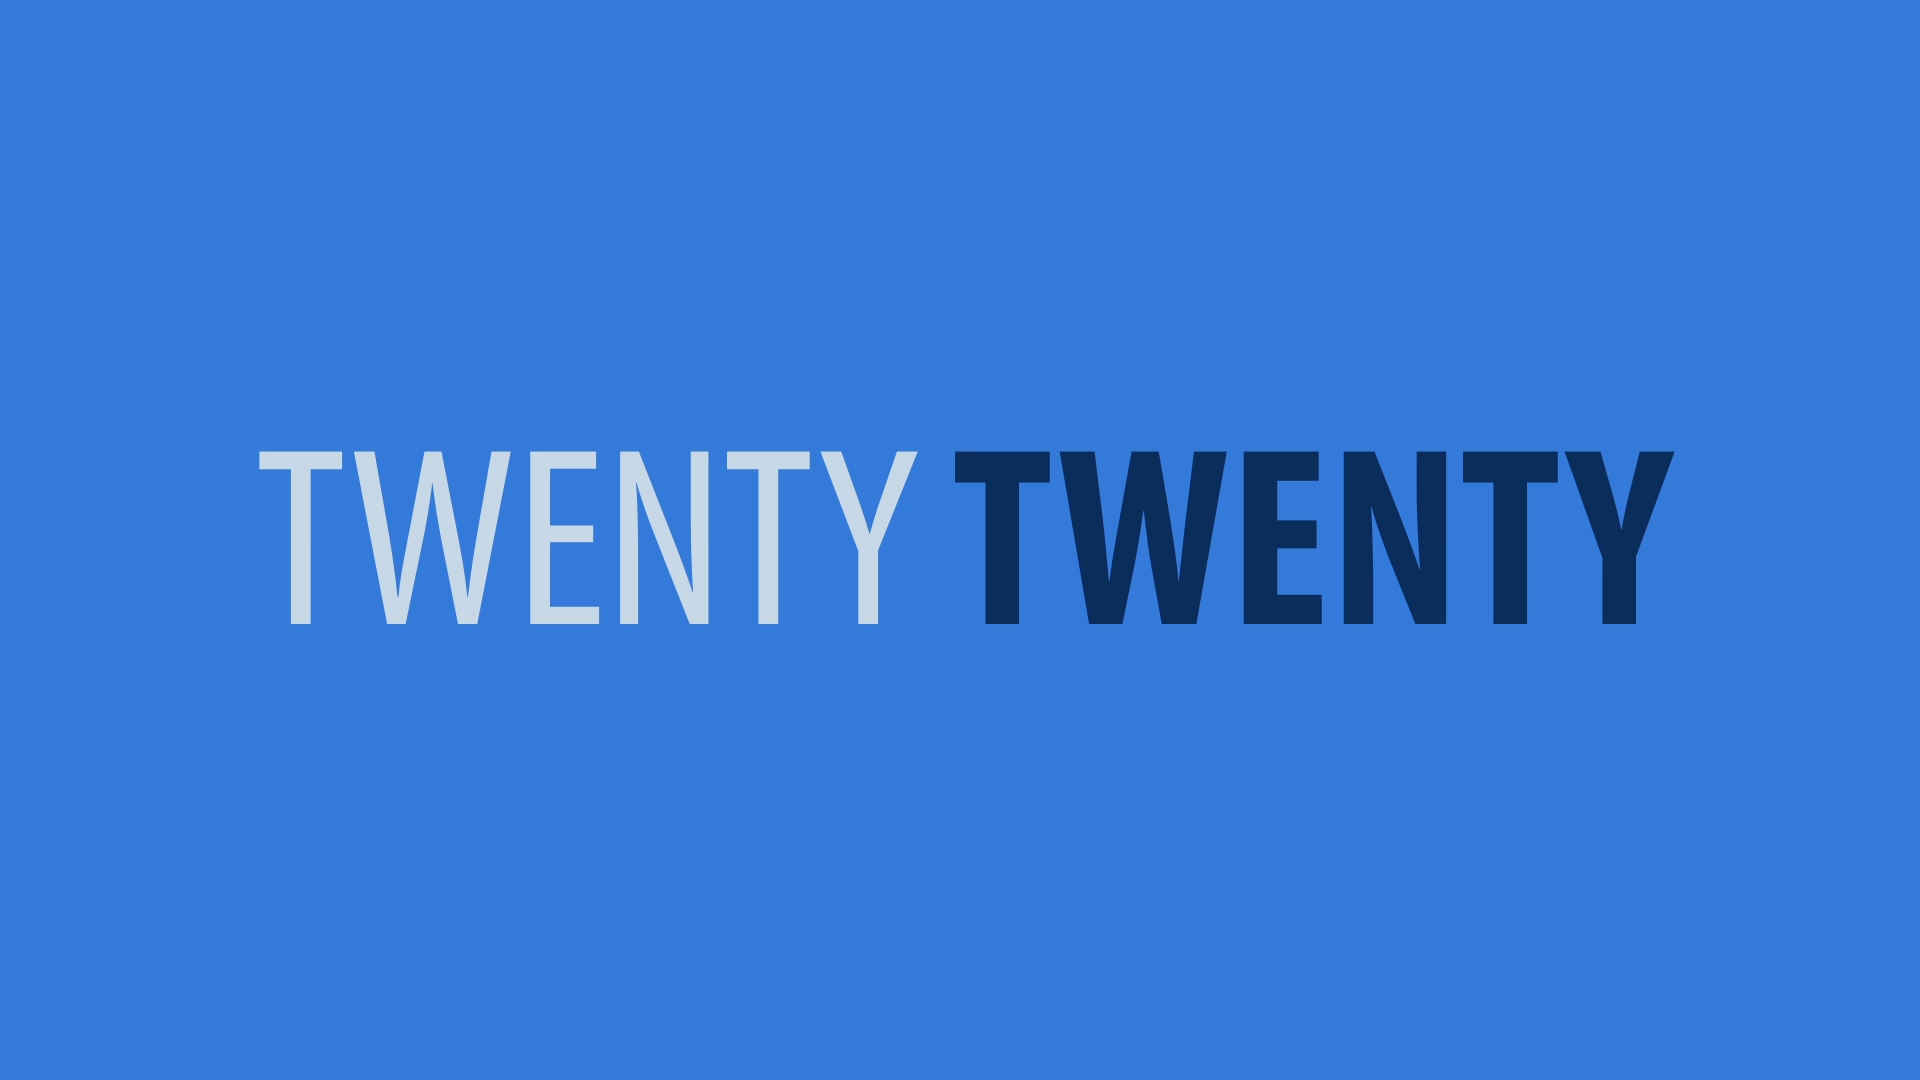 Twenty twenty kinetic title pack after effects template for Twenty pictures